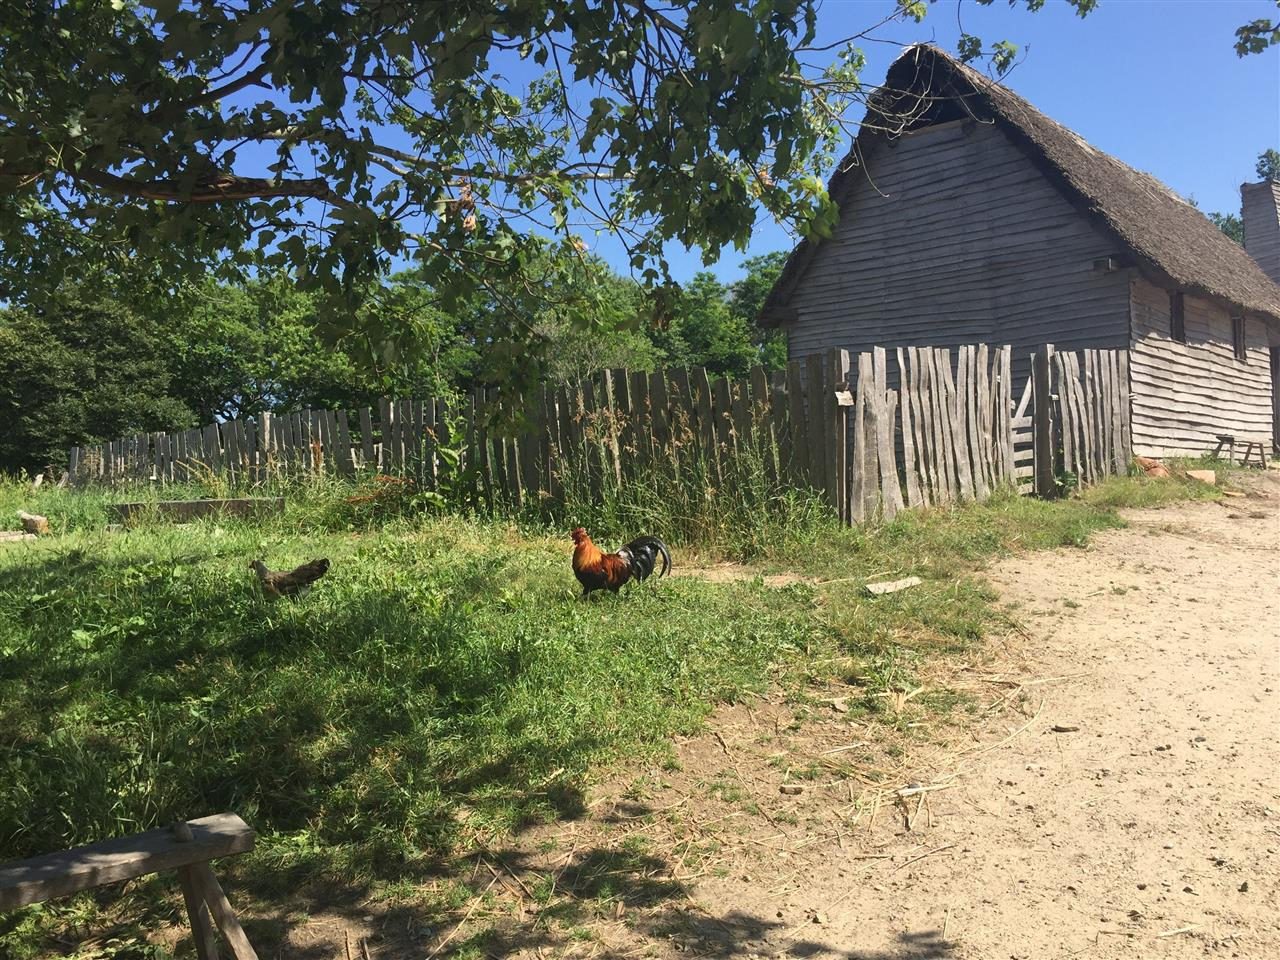 Rooster in Plimoth Plantation, Plymouth, MA